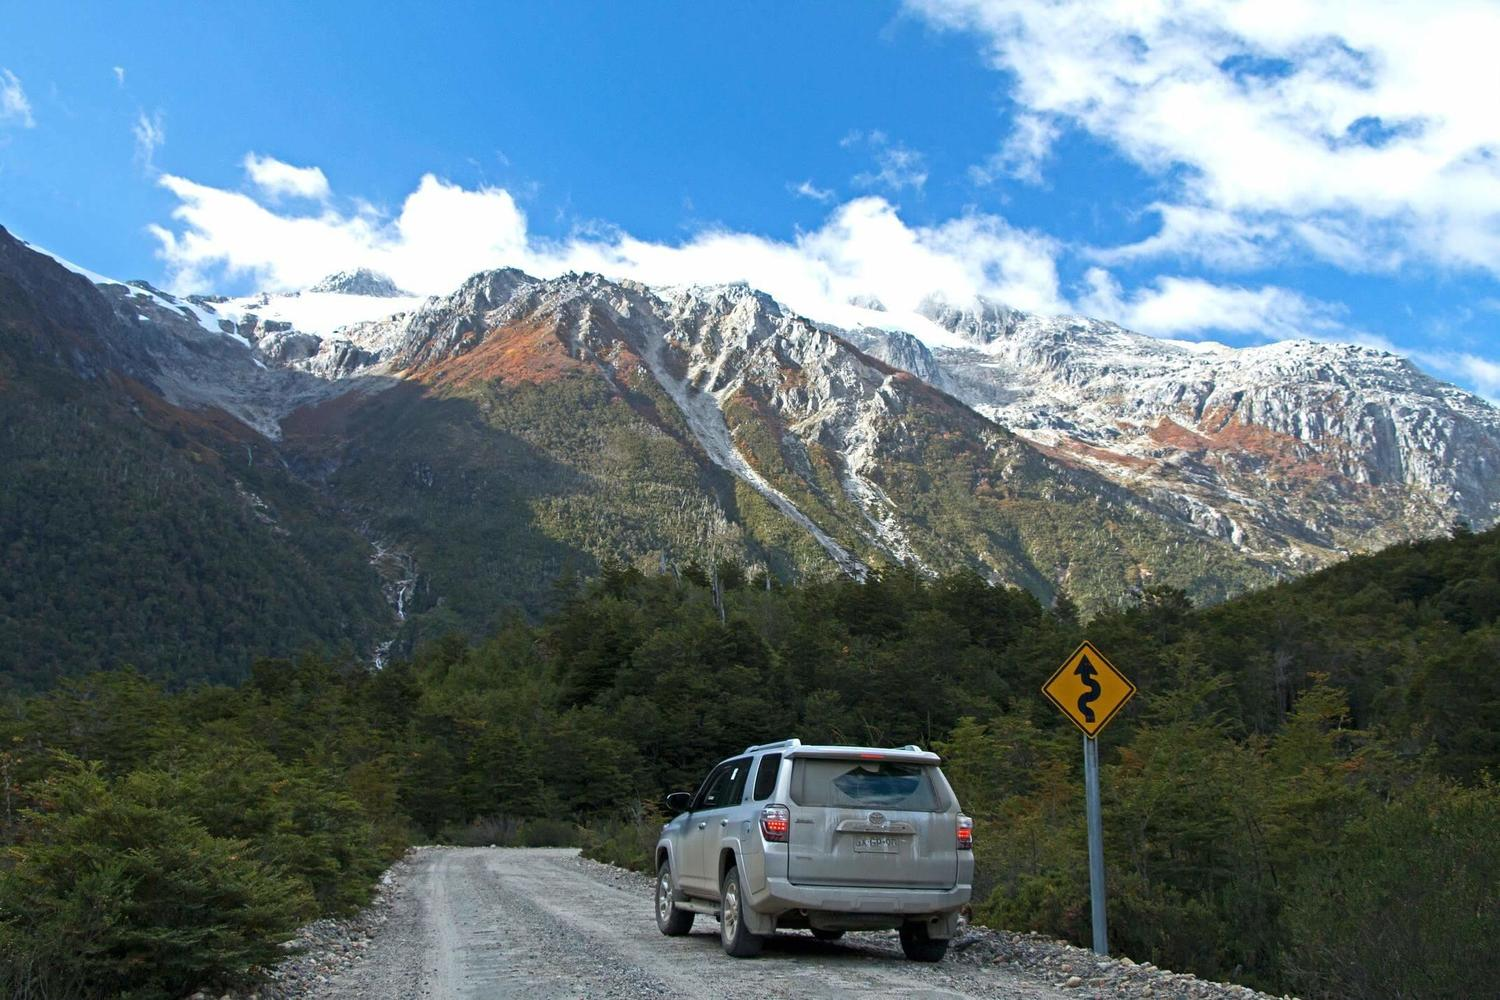 Driving along the Carretera Austral